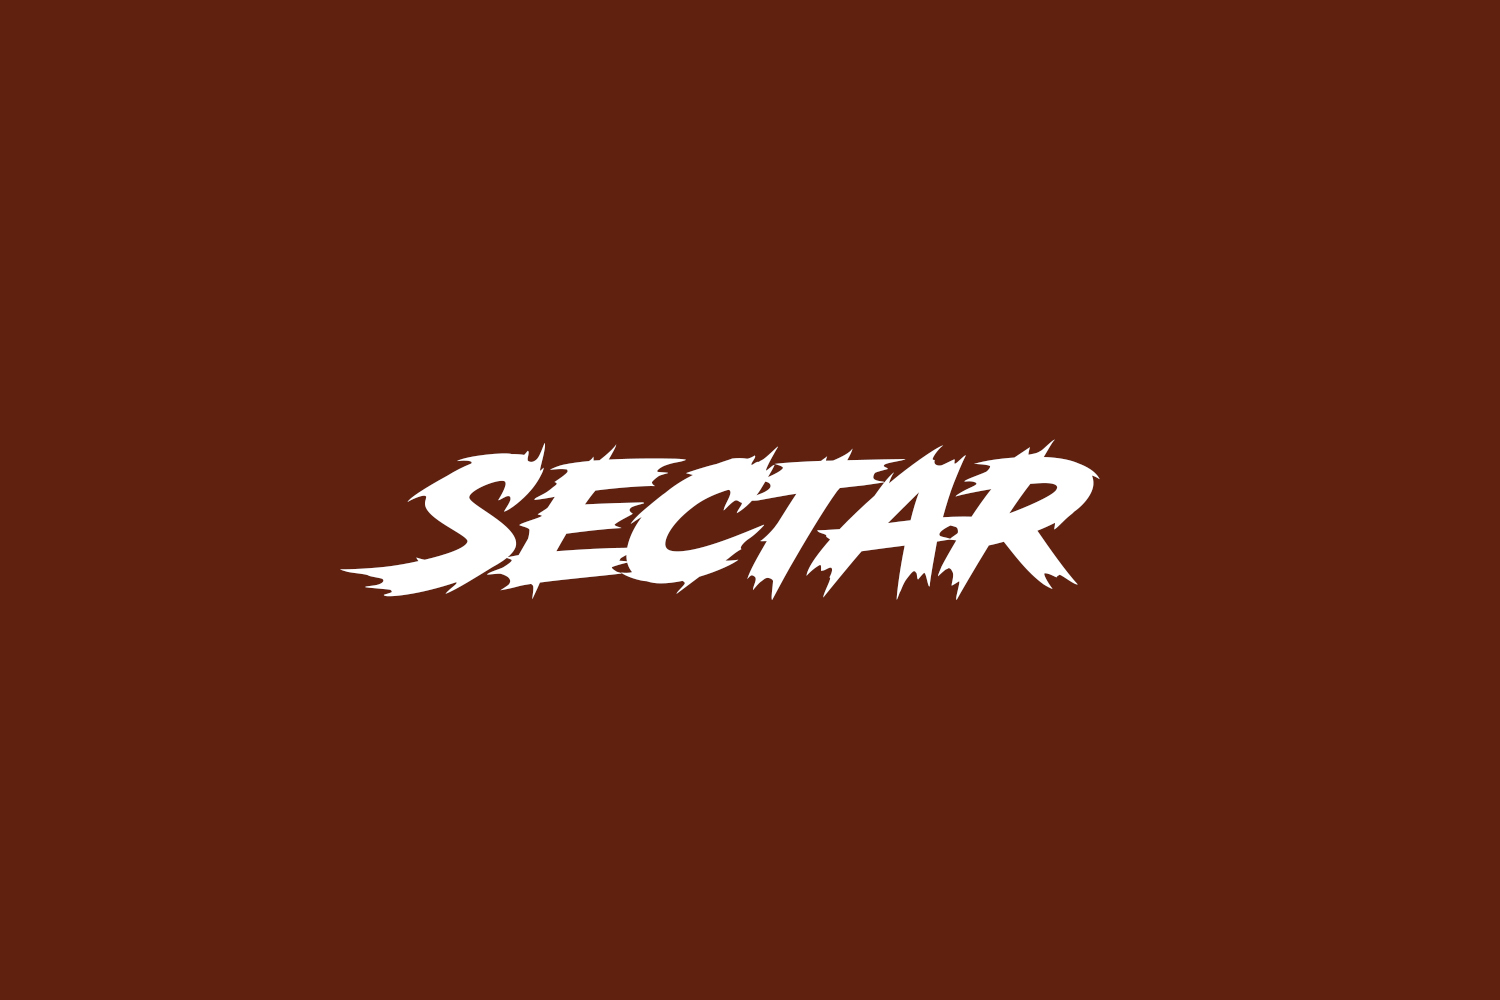 Sectar Free Font